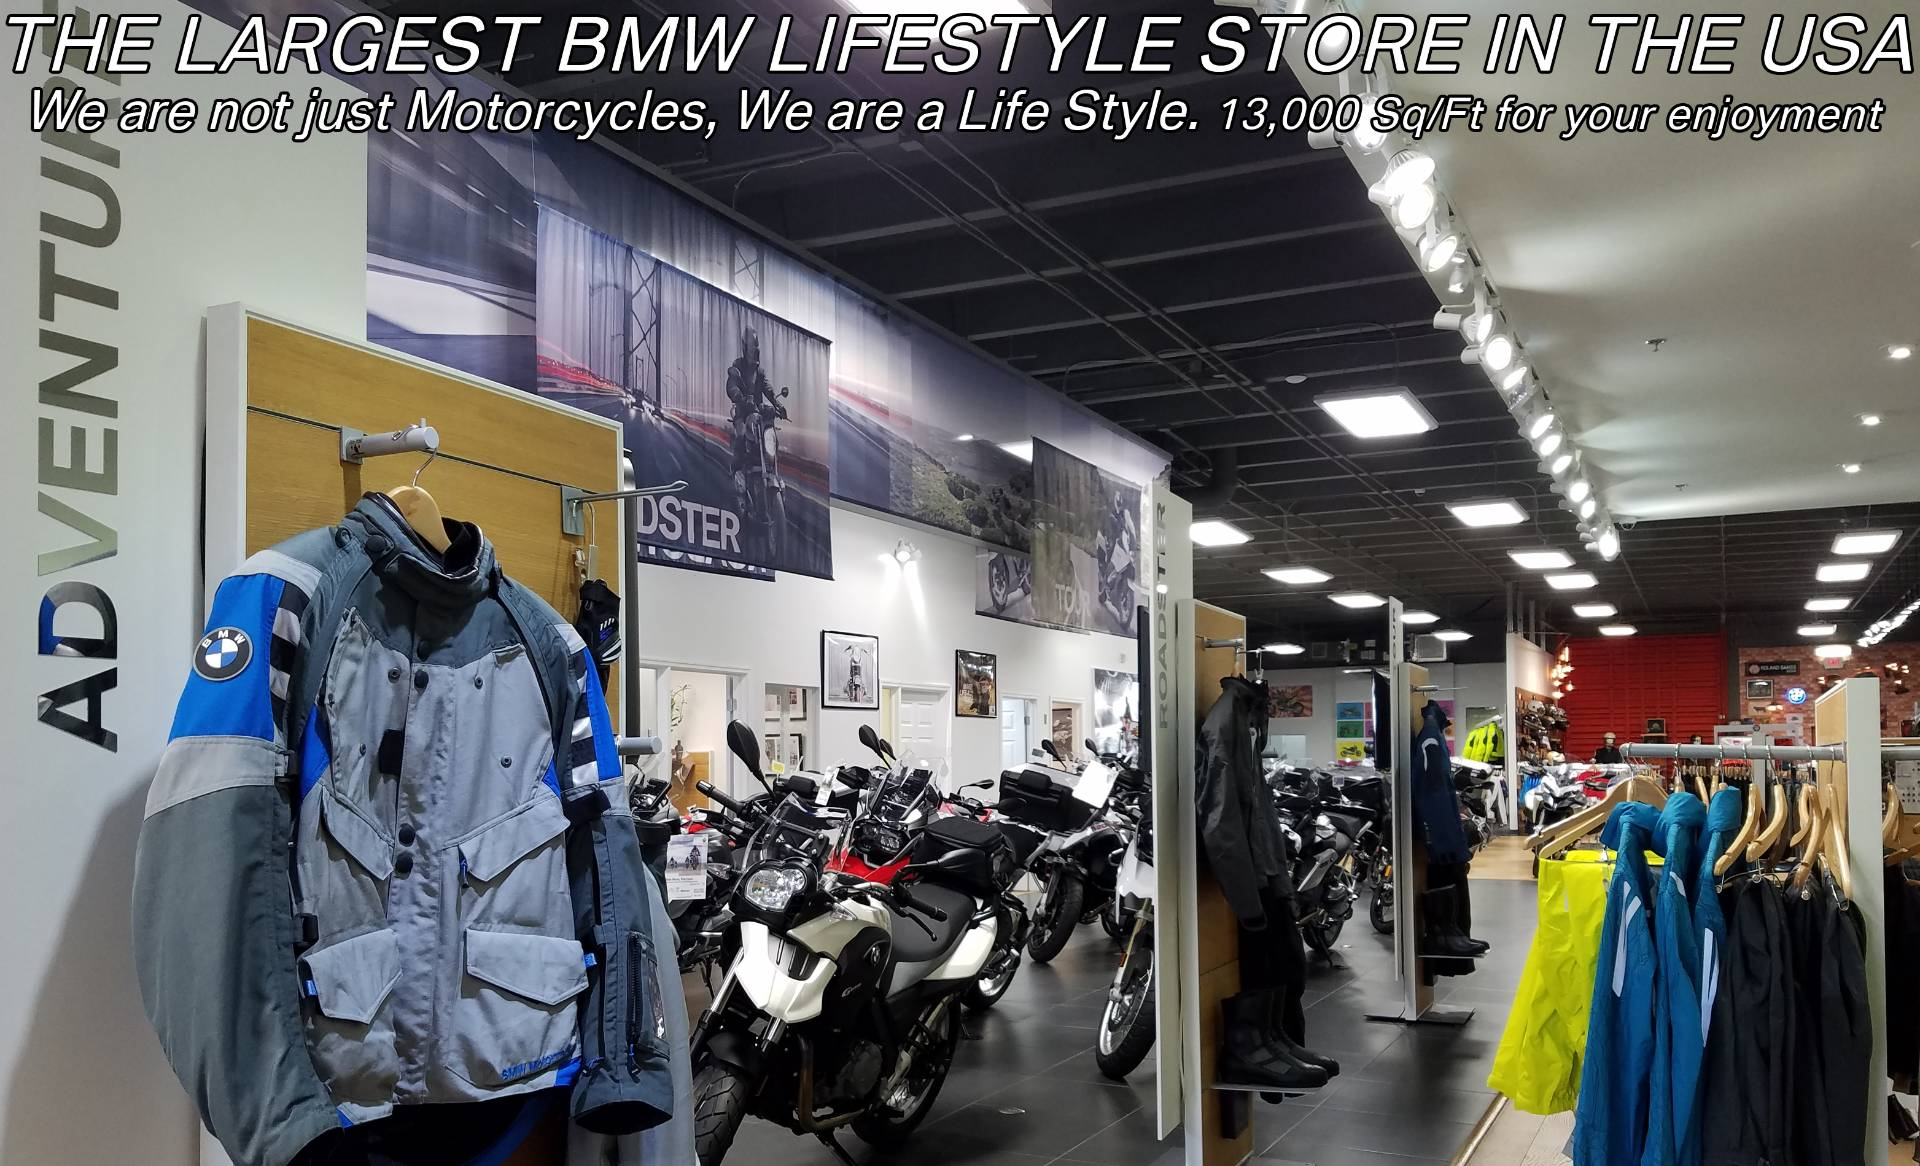 New 2019 BMW F 850 GSA for sale, BMW F 850GSA for sale, BMW Motorcycle F850GSA, new BMW 850 Adventure, Adventure. BMW Motorcycles of Miami, Motorcycles of Miami, Motorcycles Miami, New Motorcycles, Used Motorcycles, pre-owned. #BMWMotorcyclesOfMiami #MotorcyclesOfMiami #MotorcyclesMiami - Photo 57